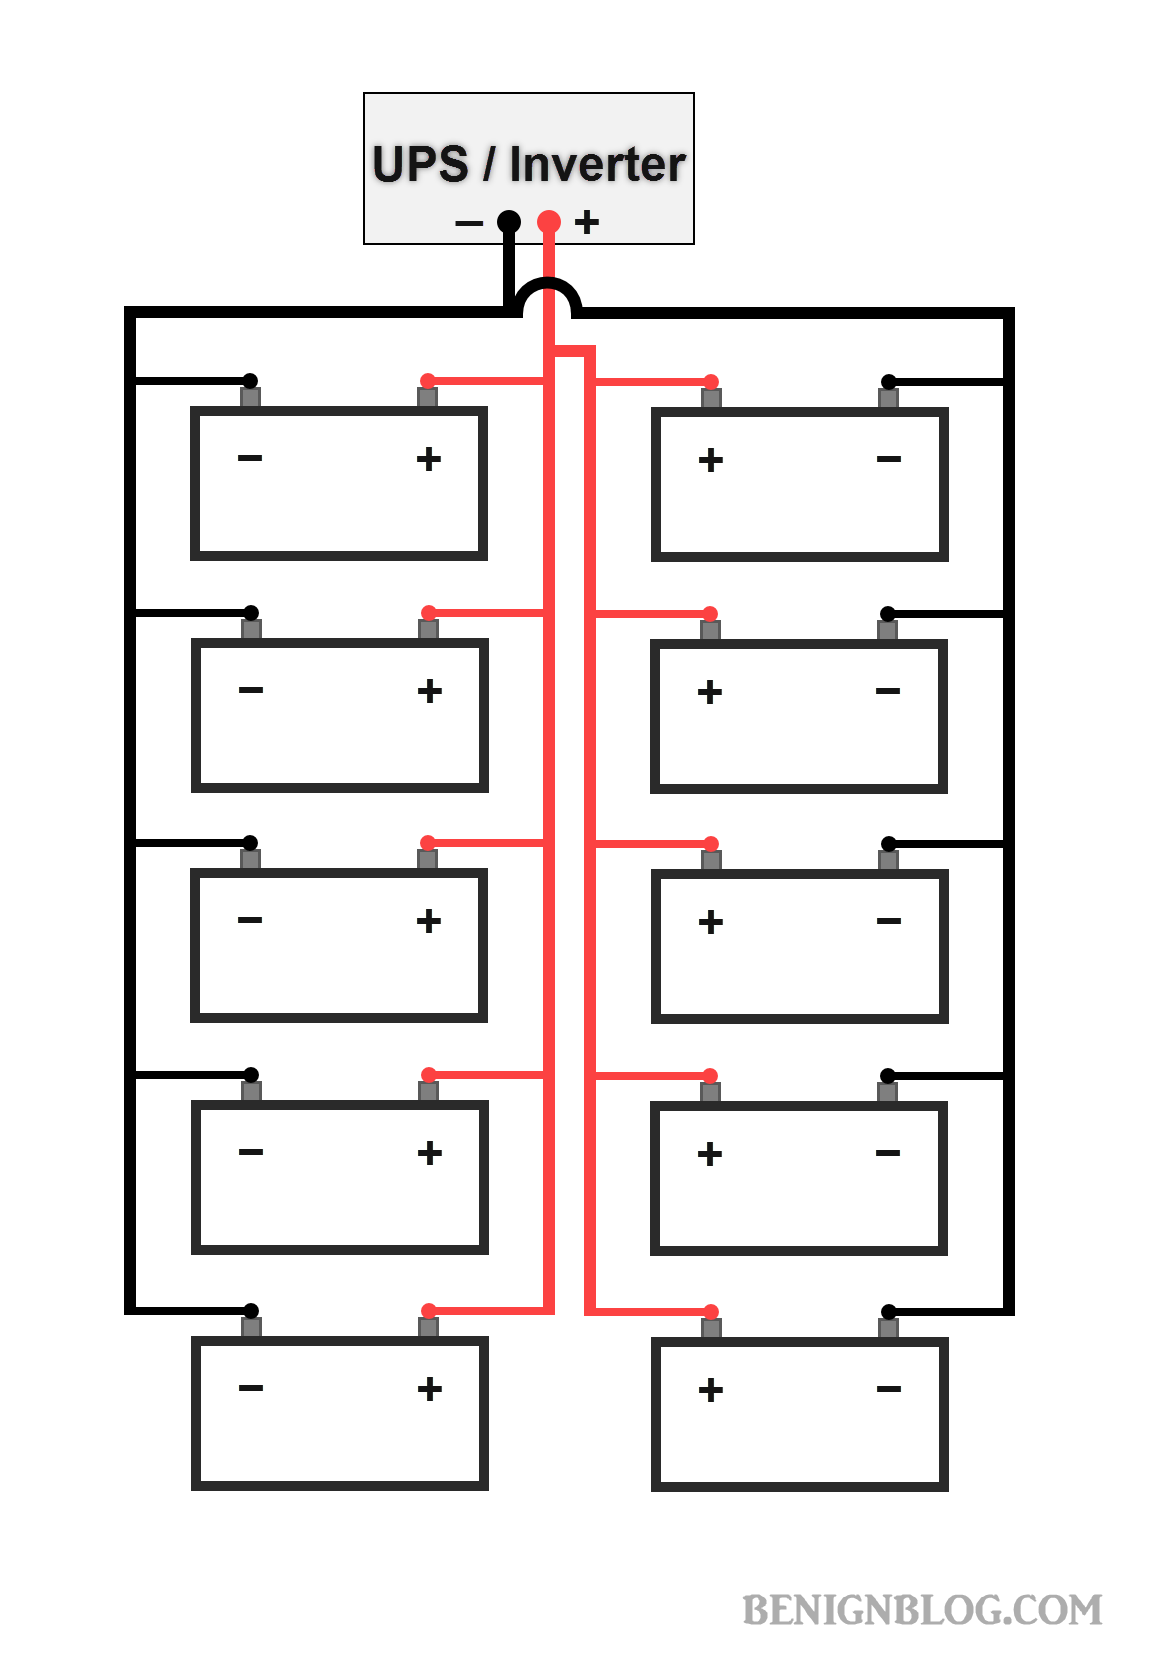 Batteries In Parallel Diagram Internal Wiring Diagrams How To Connect With Power Inverter Or Ups Series